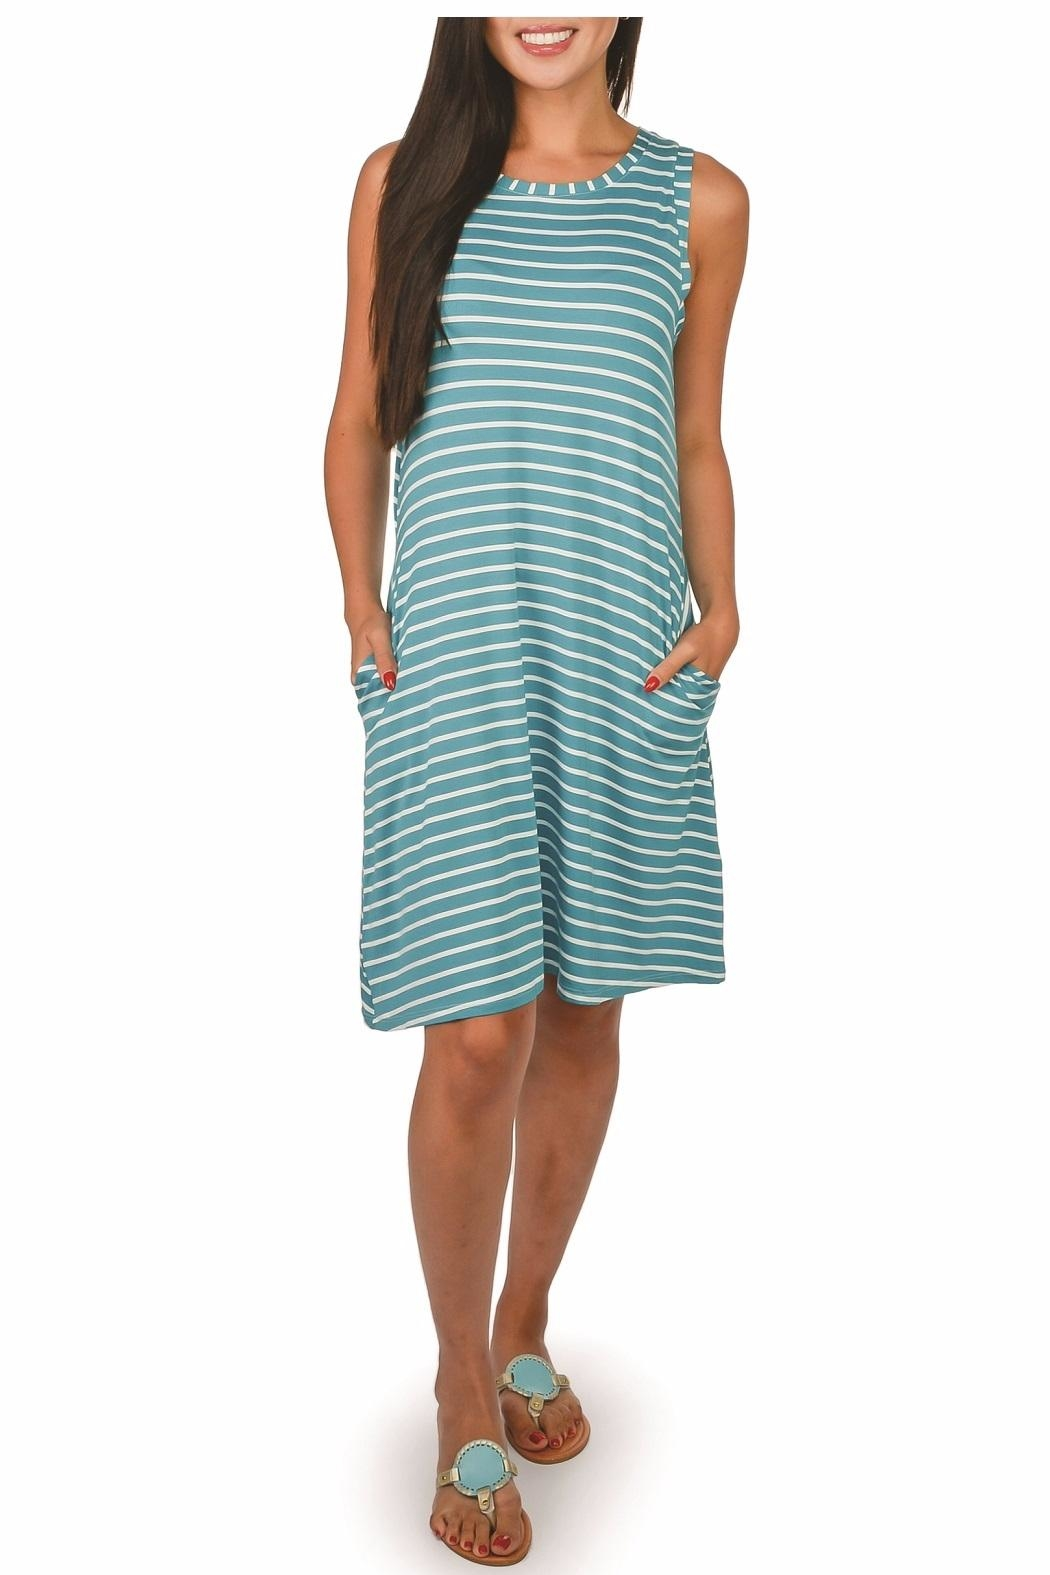 Top It Off Bella Striped Dress - Front Cropped Image